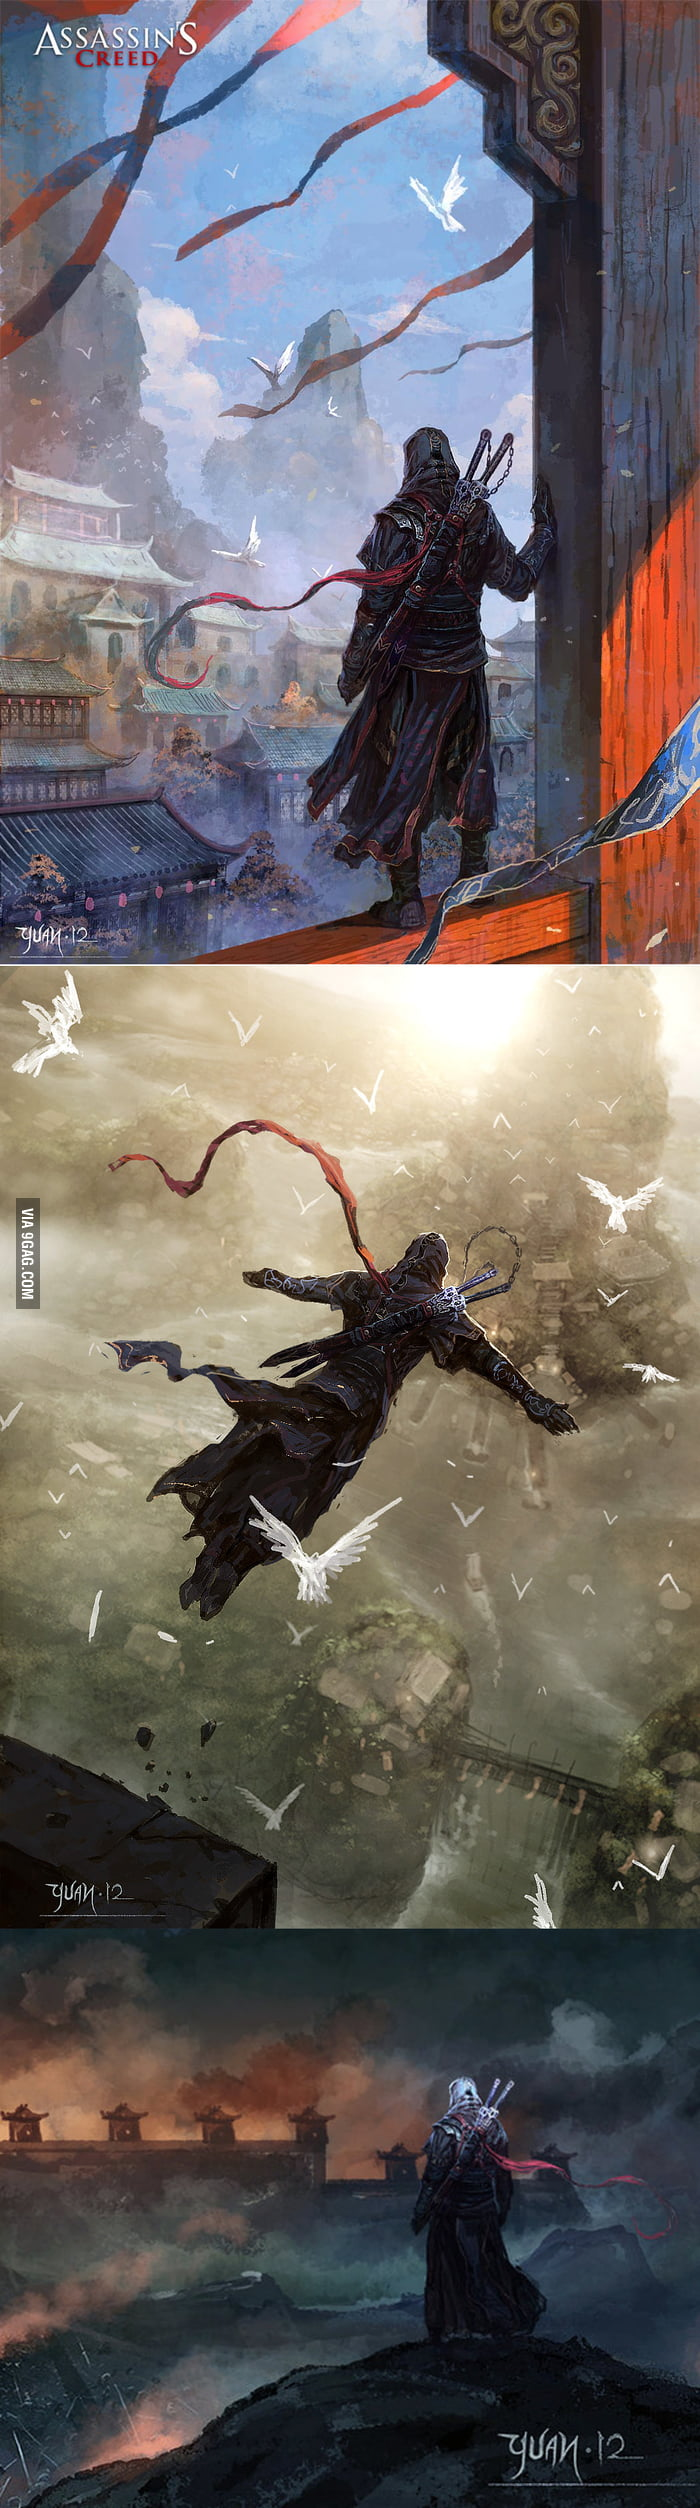 Chinese Assassin's Creed version, made by a fan